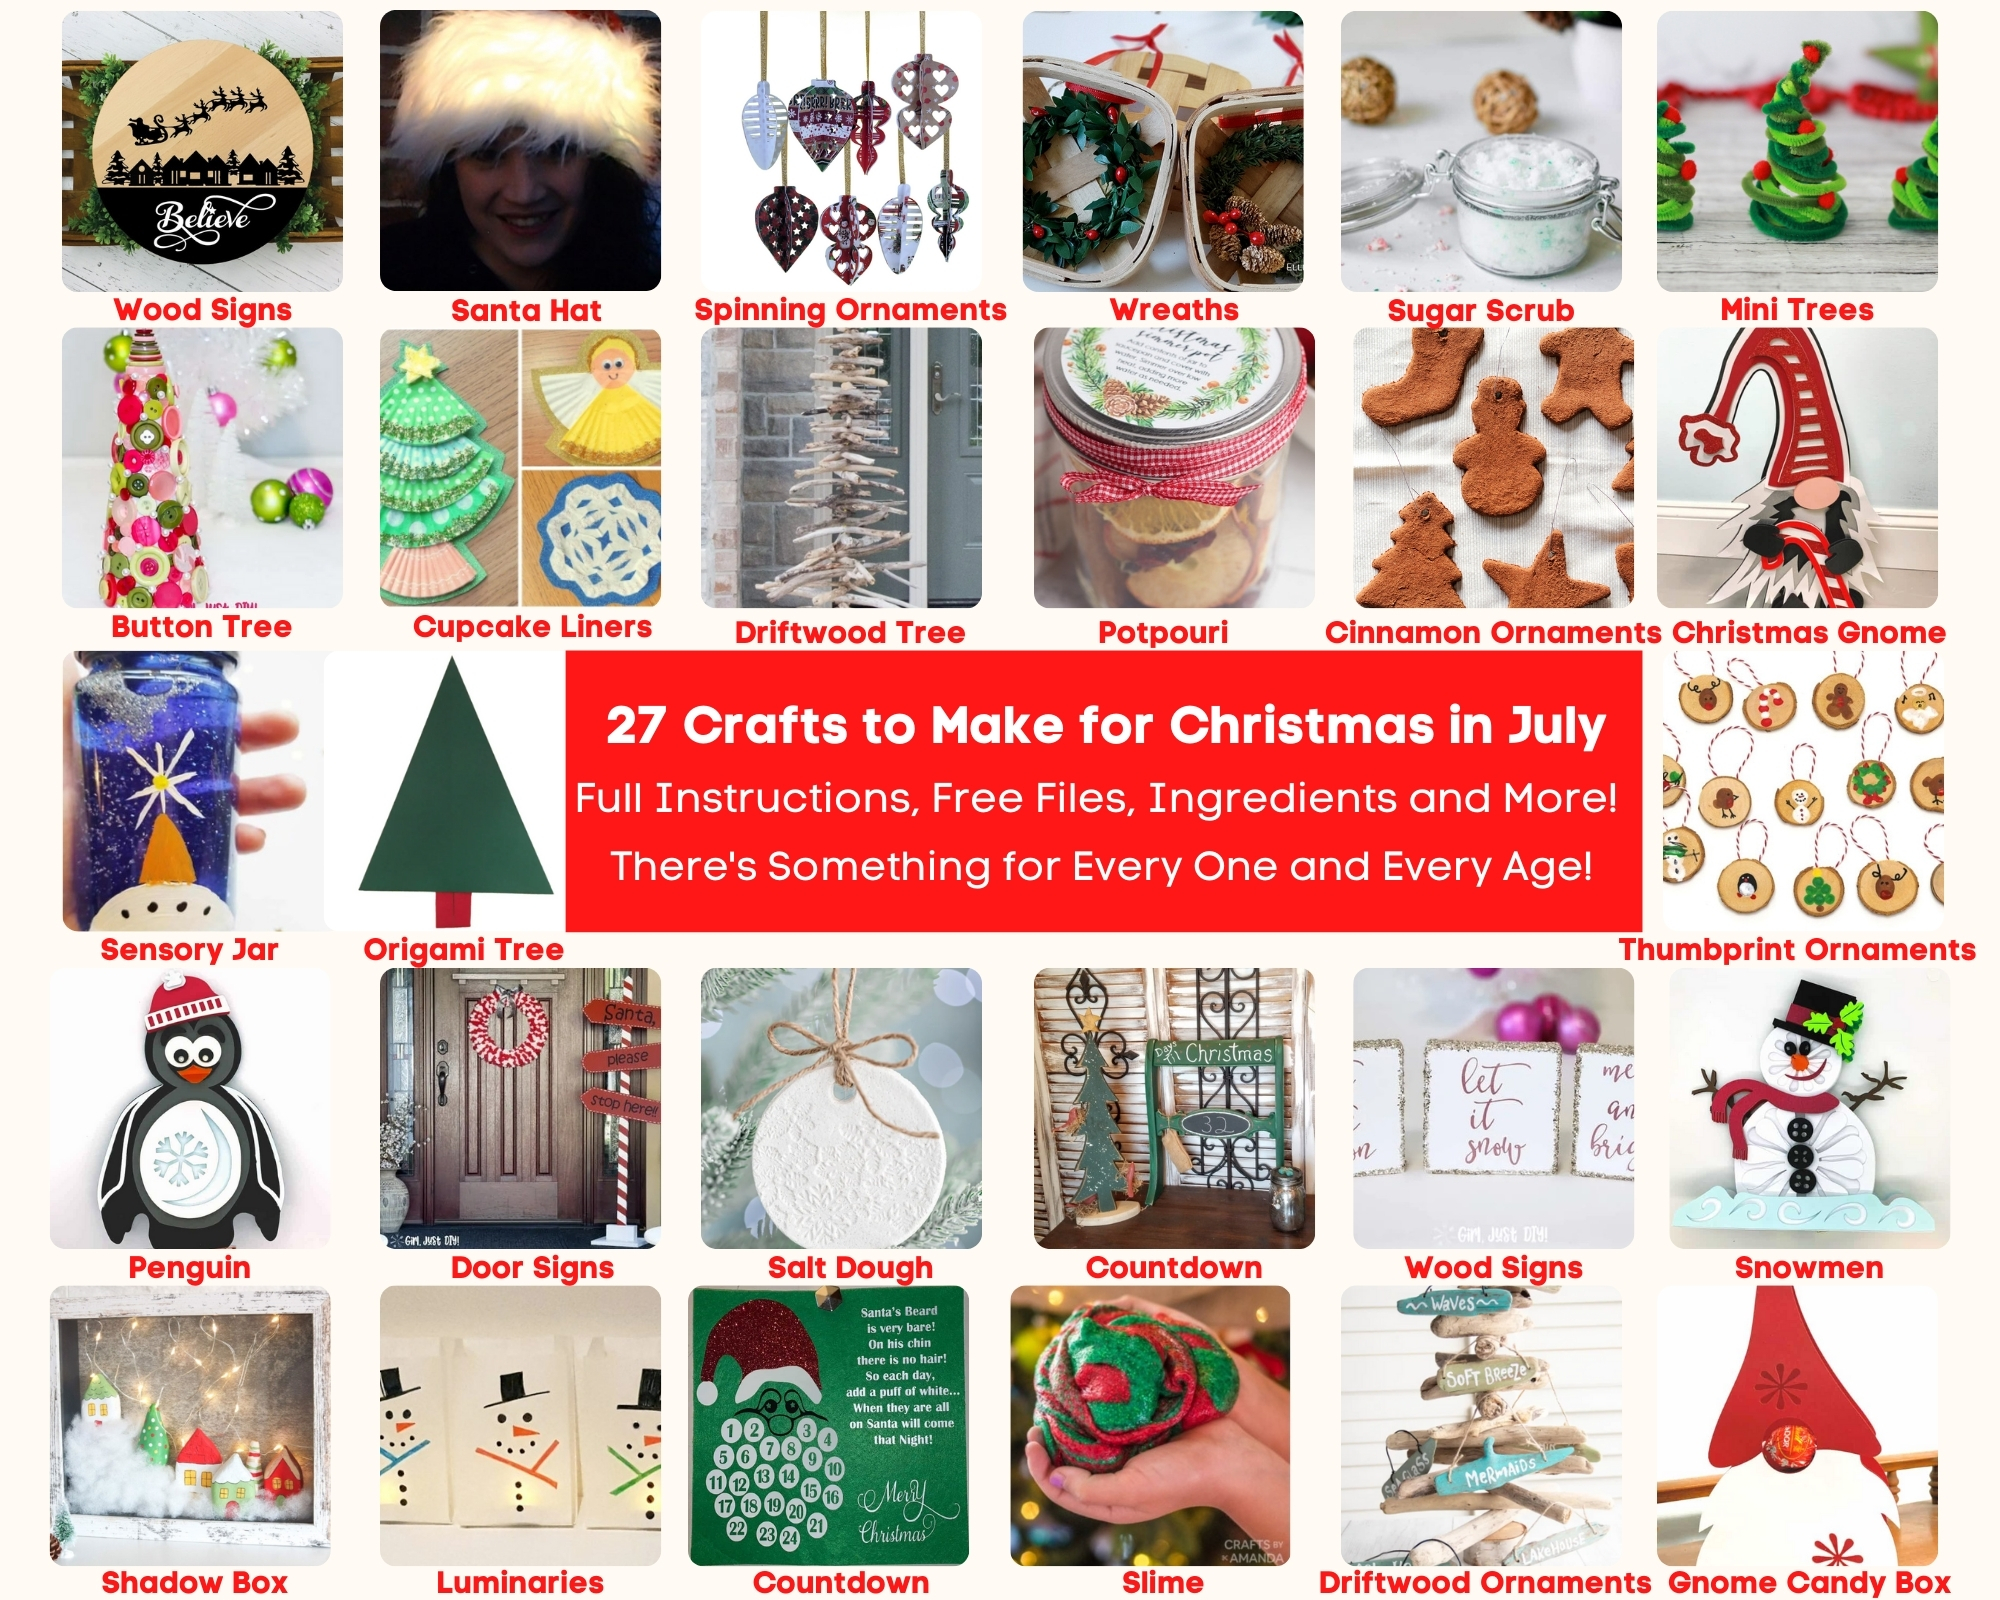 27 Fabulous Crafts for Christmas in July!